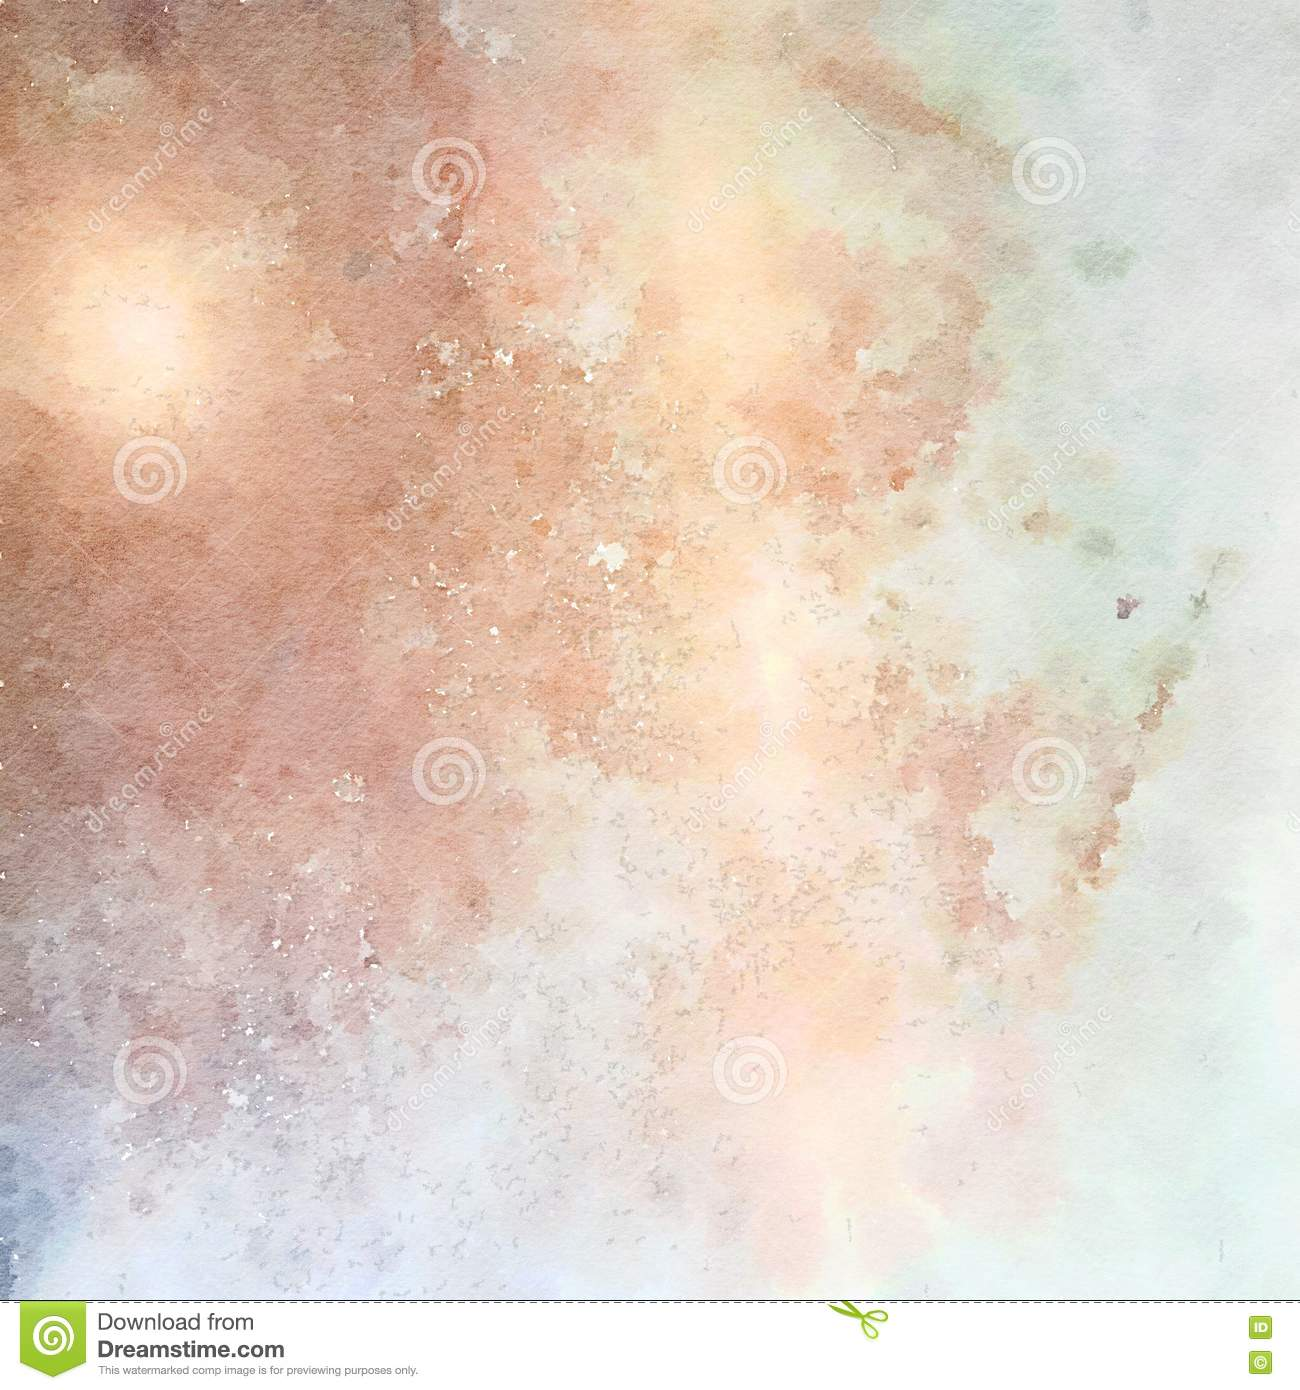 Soft pastel grungy abstract watercolor background in blue and brown